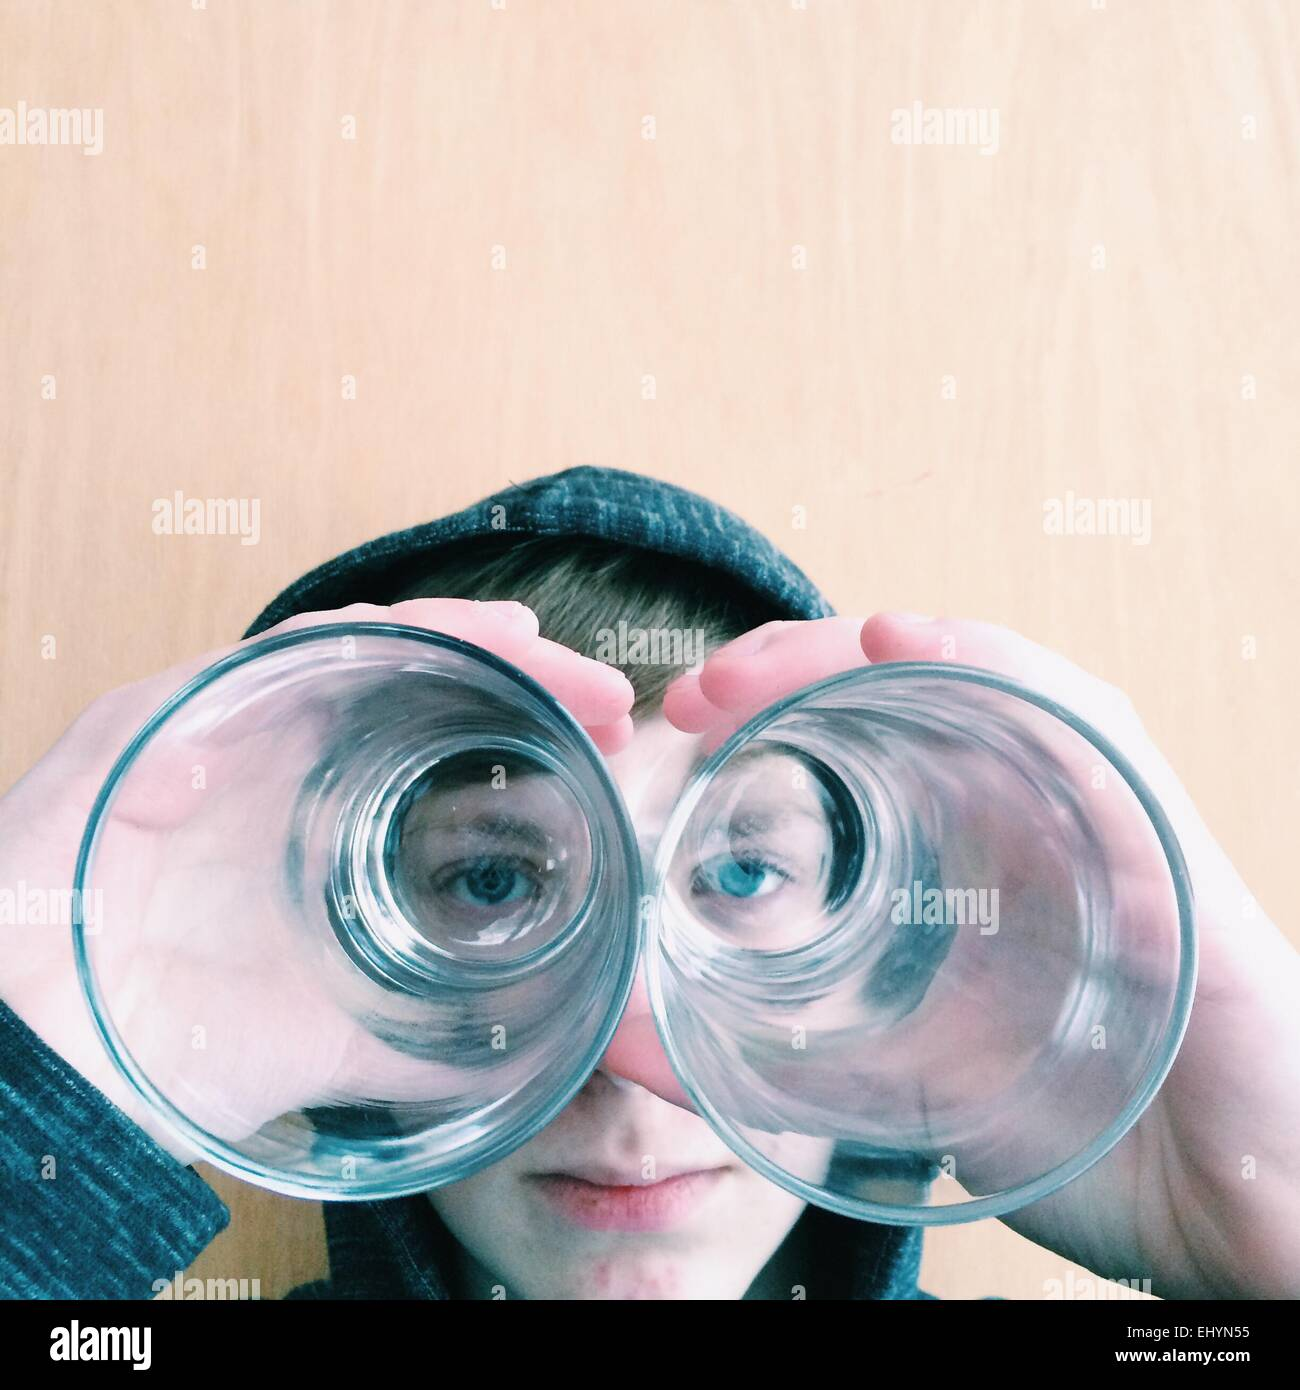 Boy looking through the bottom of two drinking glasses - Stock Image